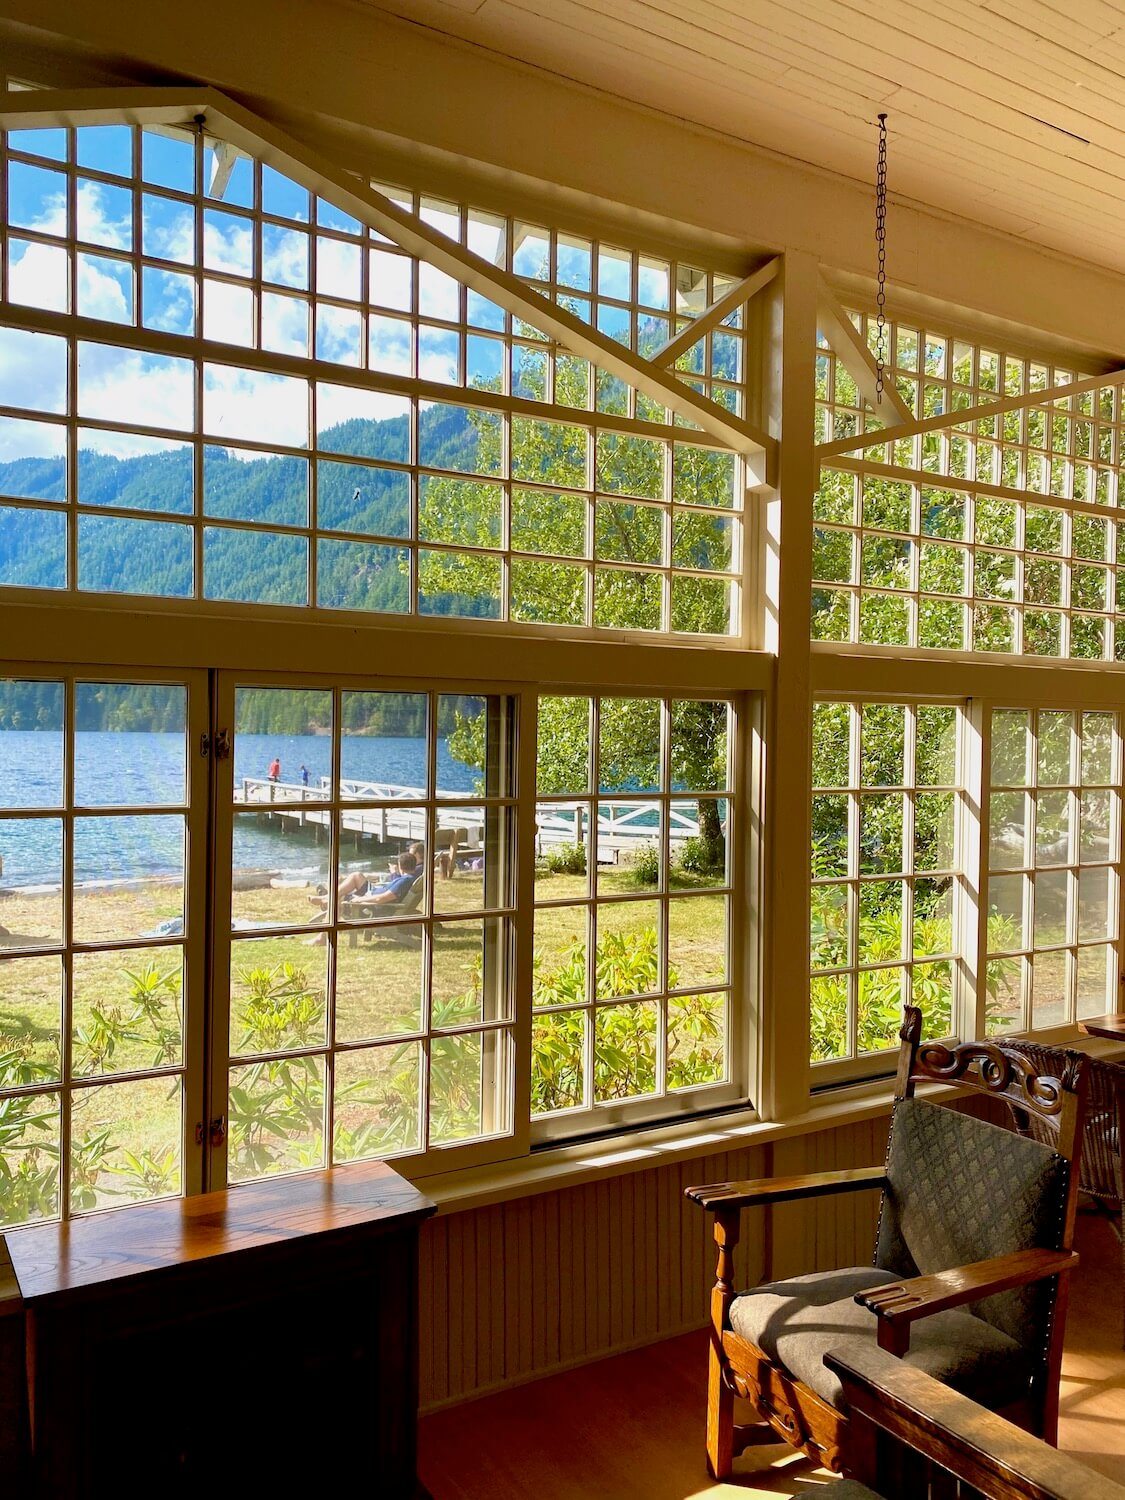 The view looking out of the Lake Crescent Lodge sunporch toward the lake and dock. They windows offer a full view and are made up of tiny panes of glass. Inside the porch is a antique brown chair.